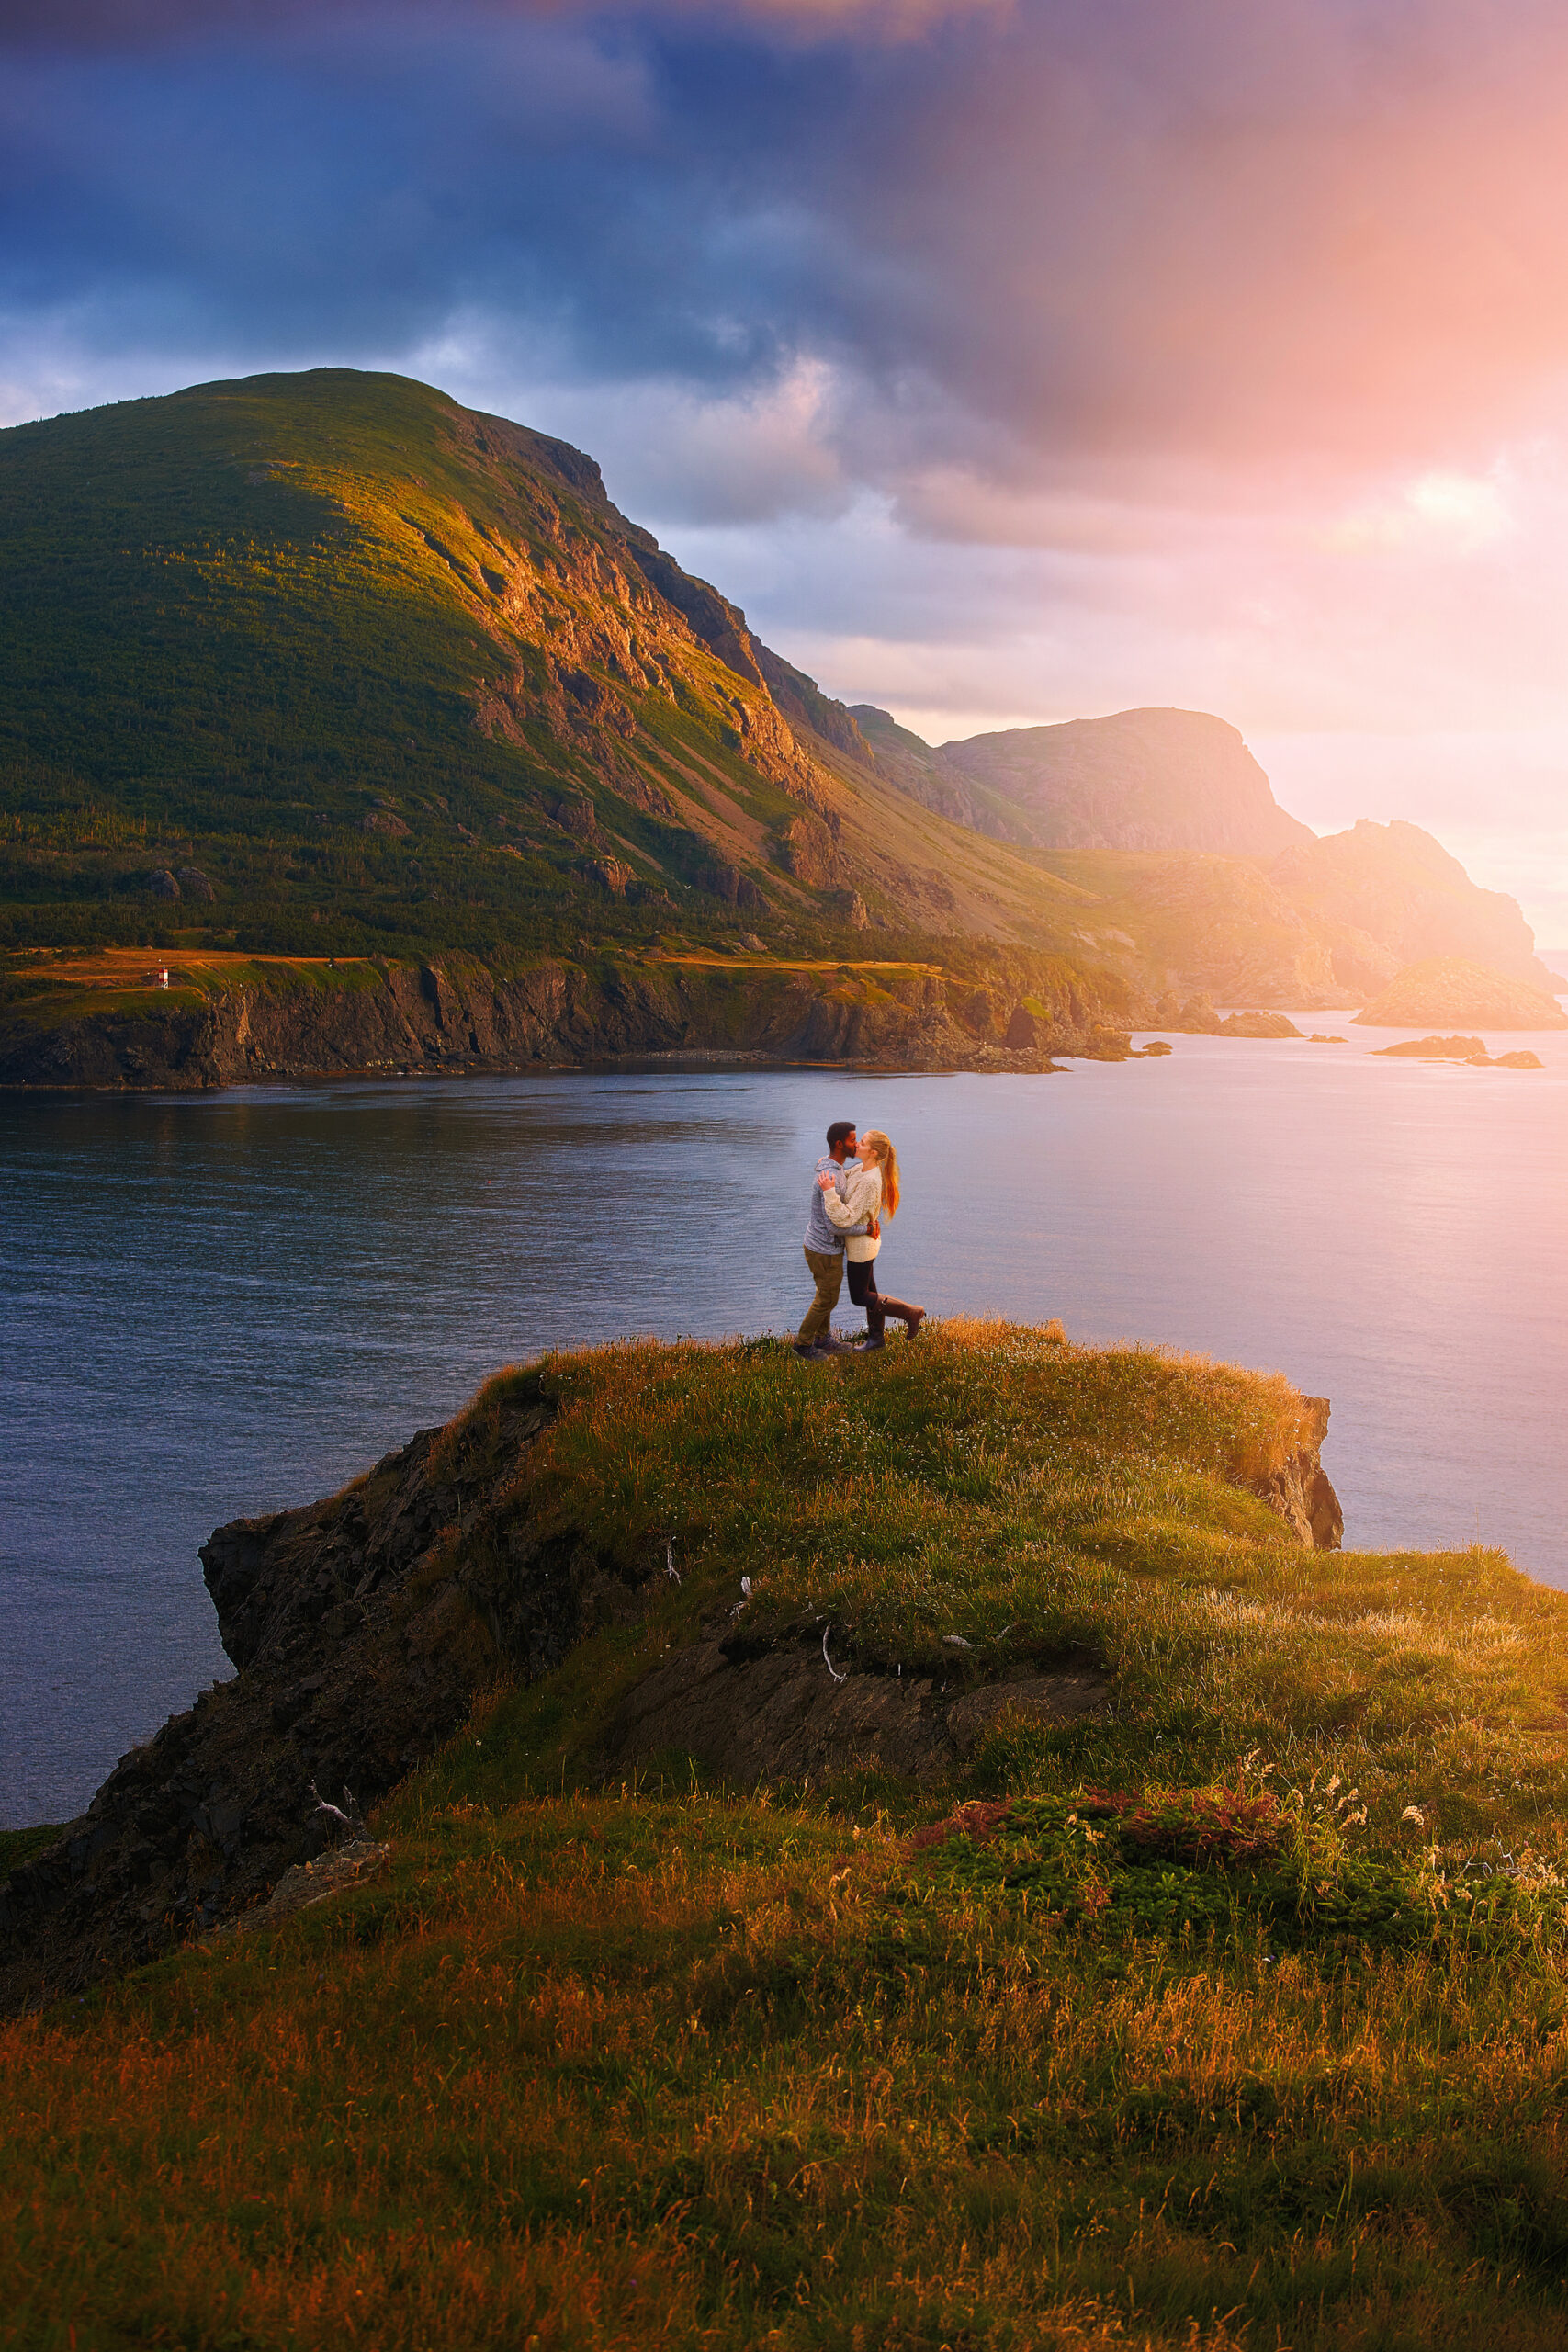 A couple kissing on the shore of the Trout River in Gros Morne National Park. There is a mountain range on the other side of the river. The sun is starting to set. It is one of the best stops on a West Newfoundland itinerary.